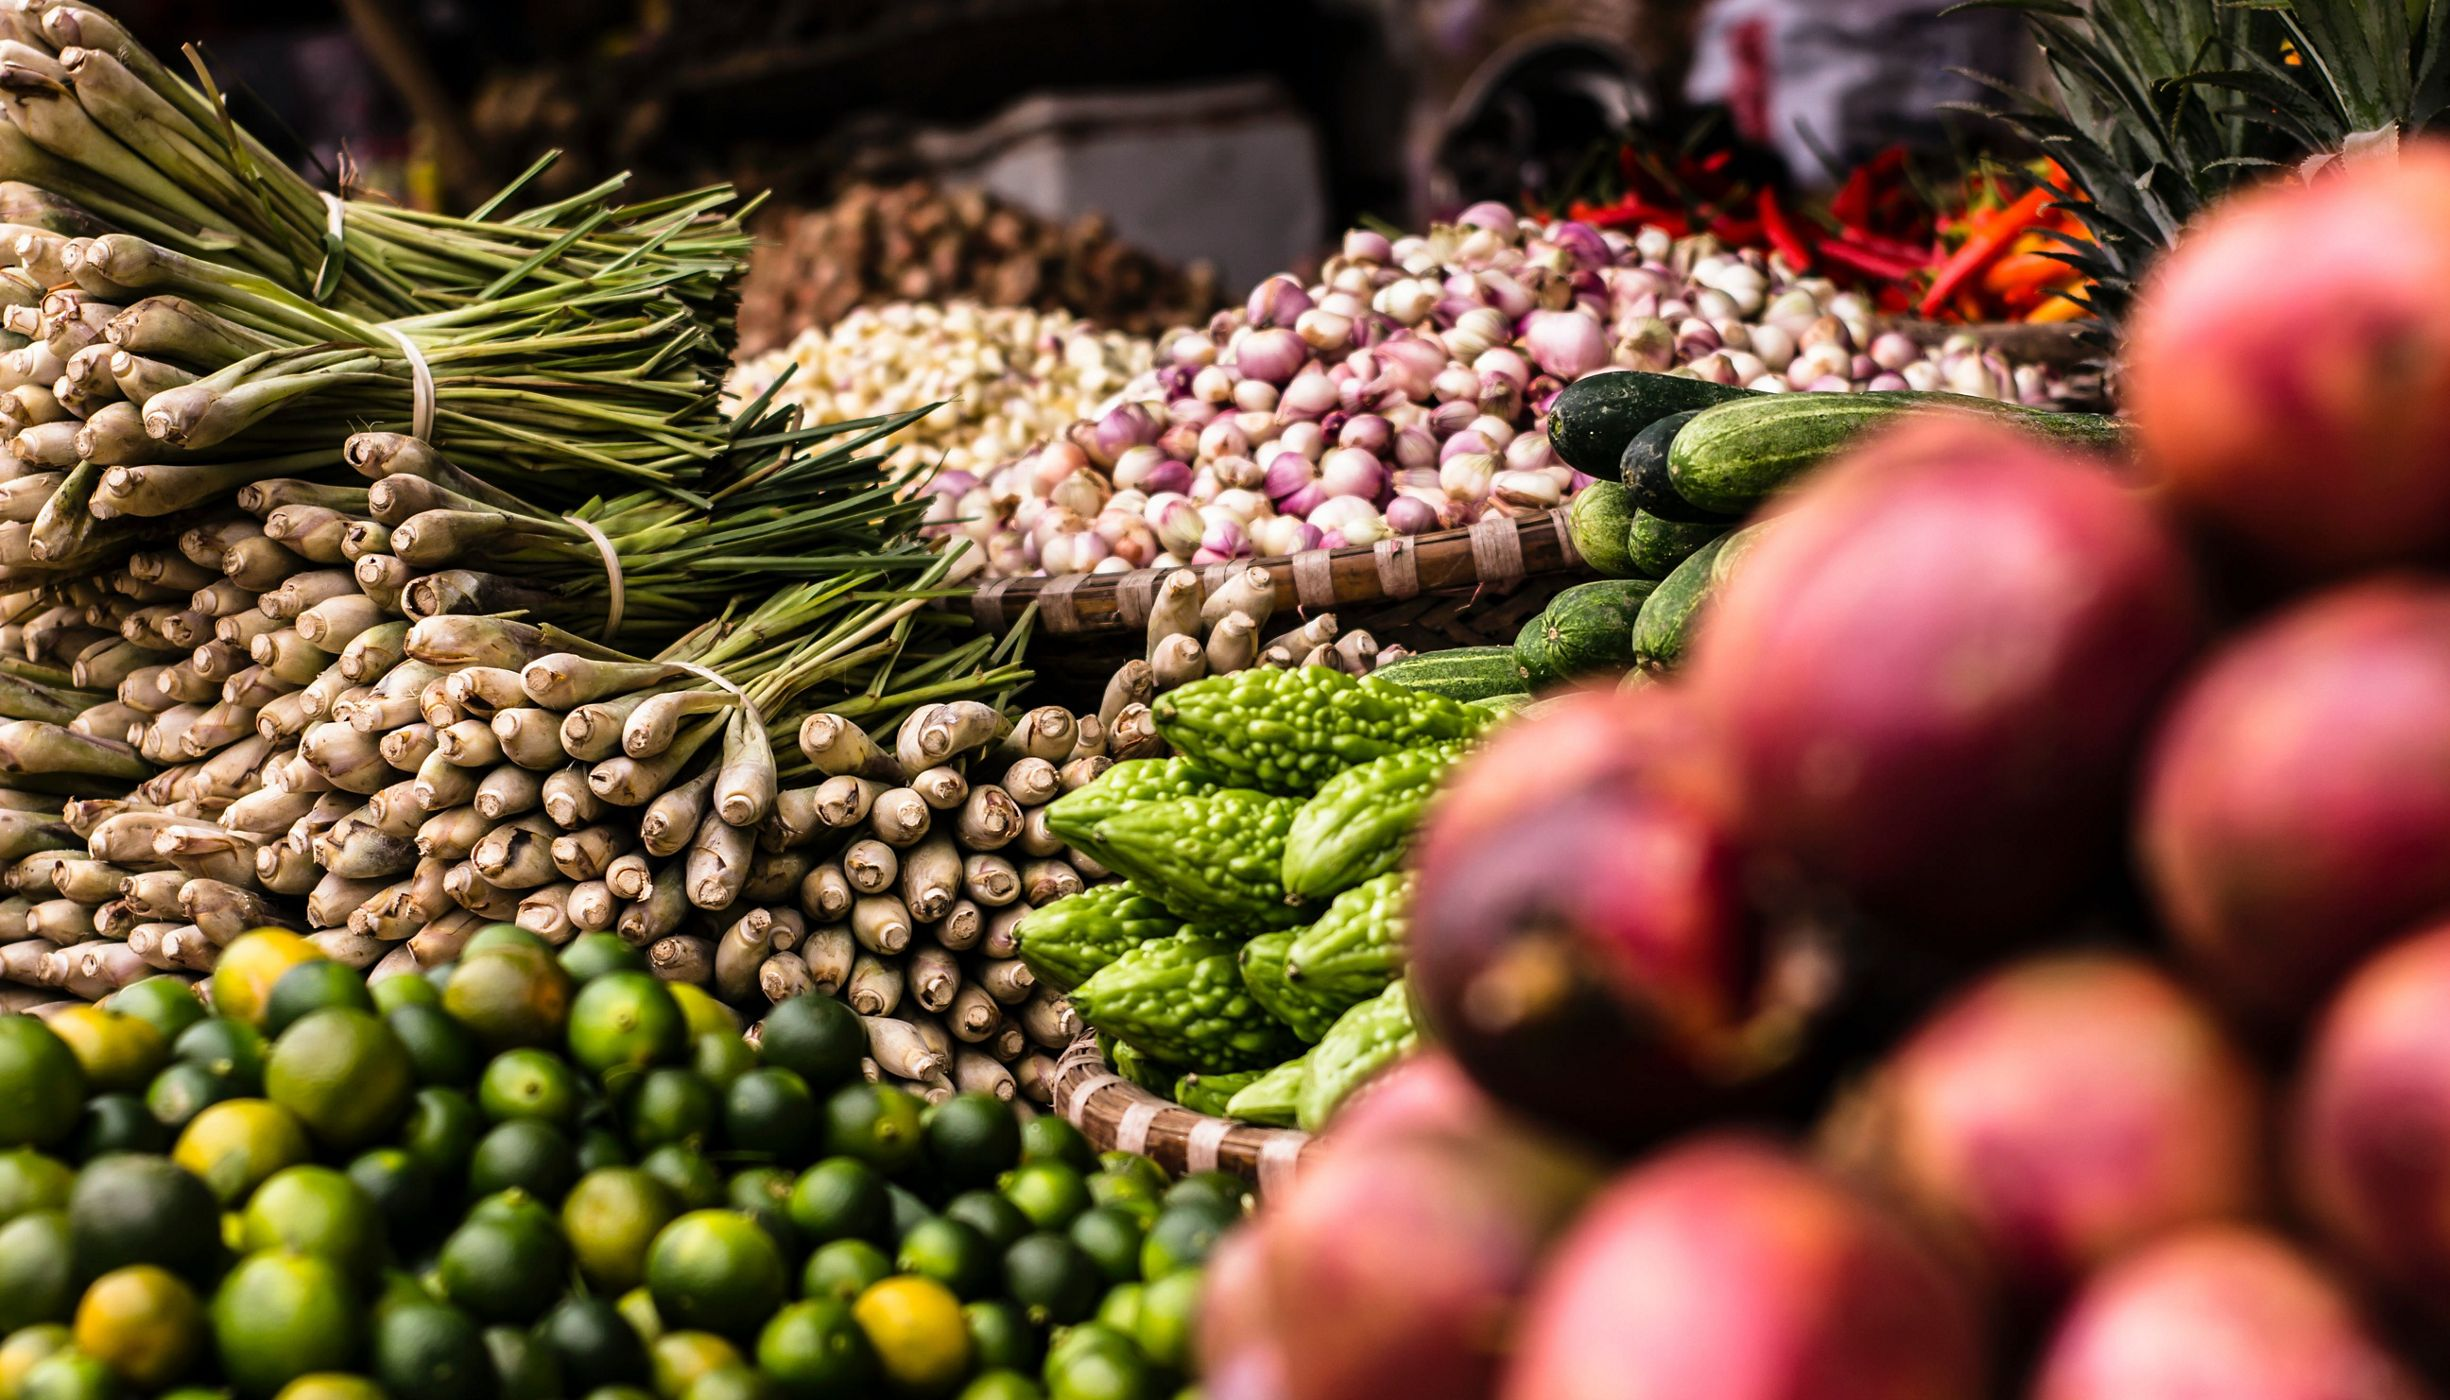 A variety of vegetables for sale at a fresh market in Vietnam